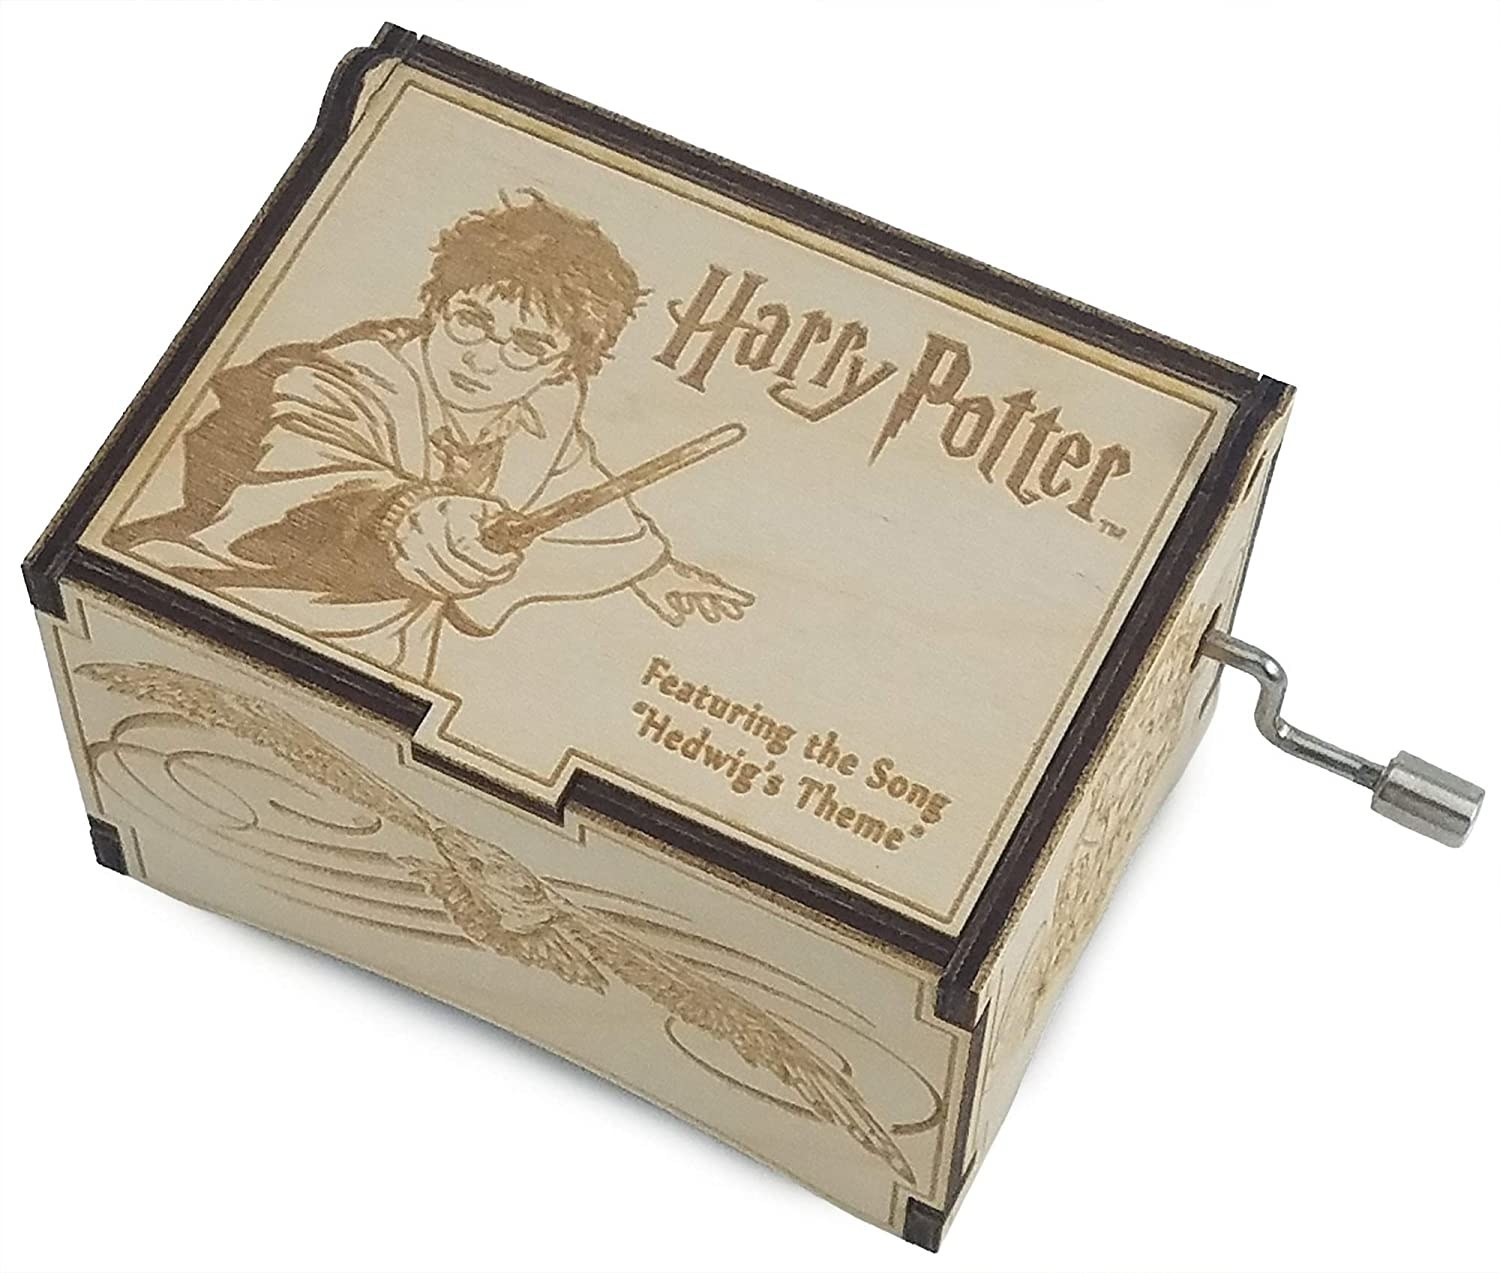 the music box with Harry Potter engraving